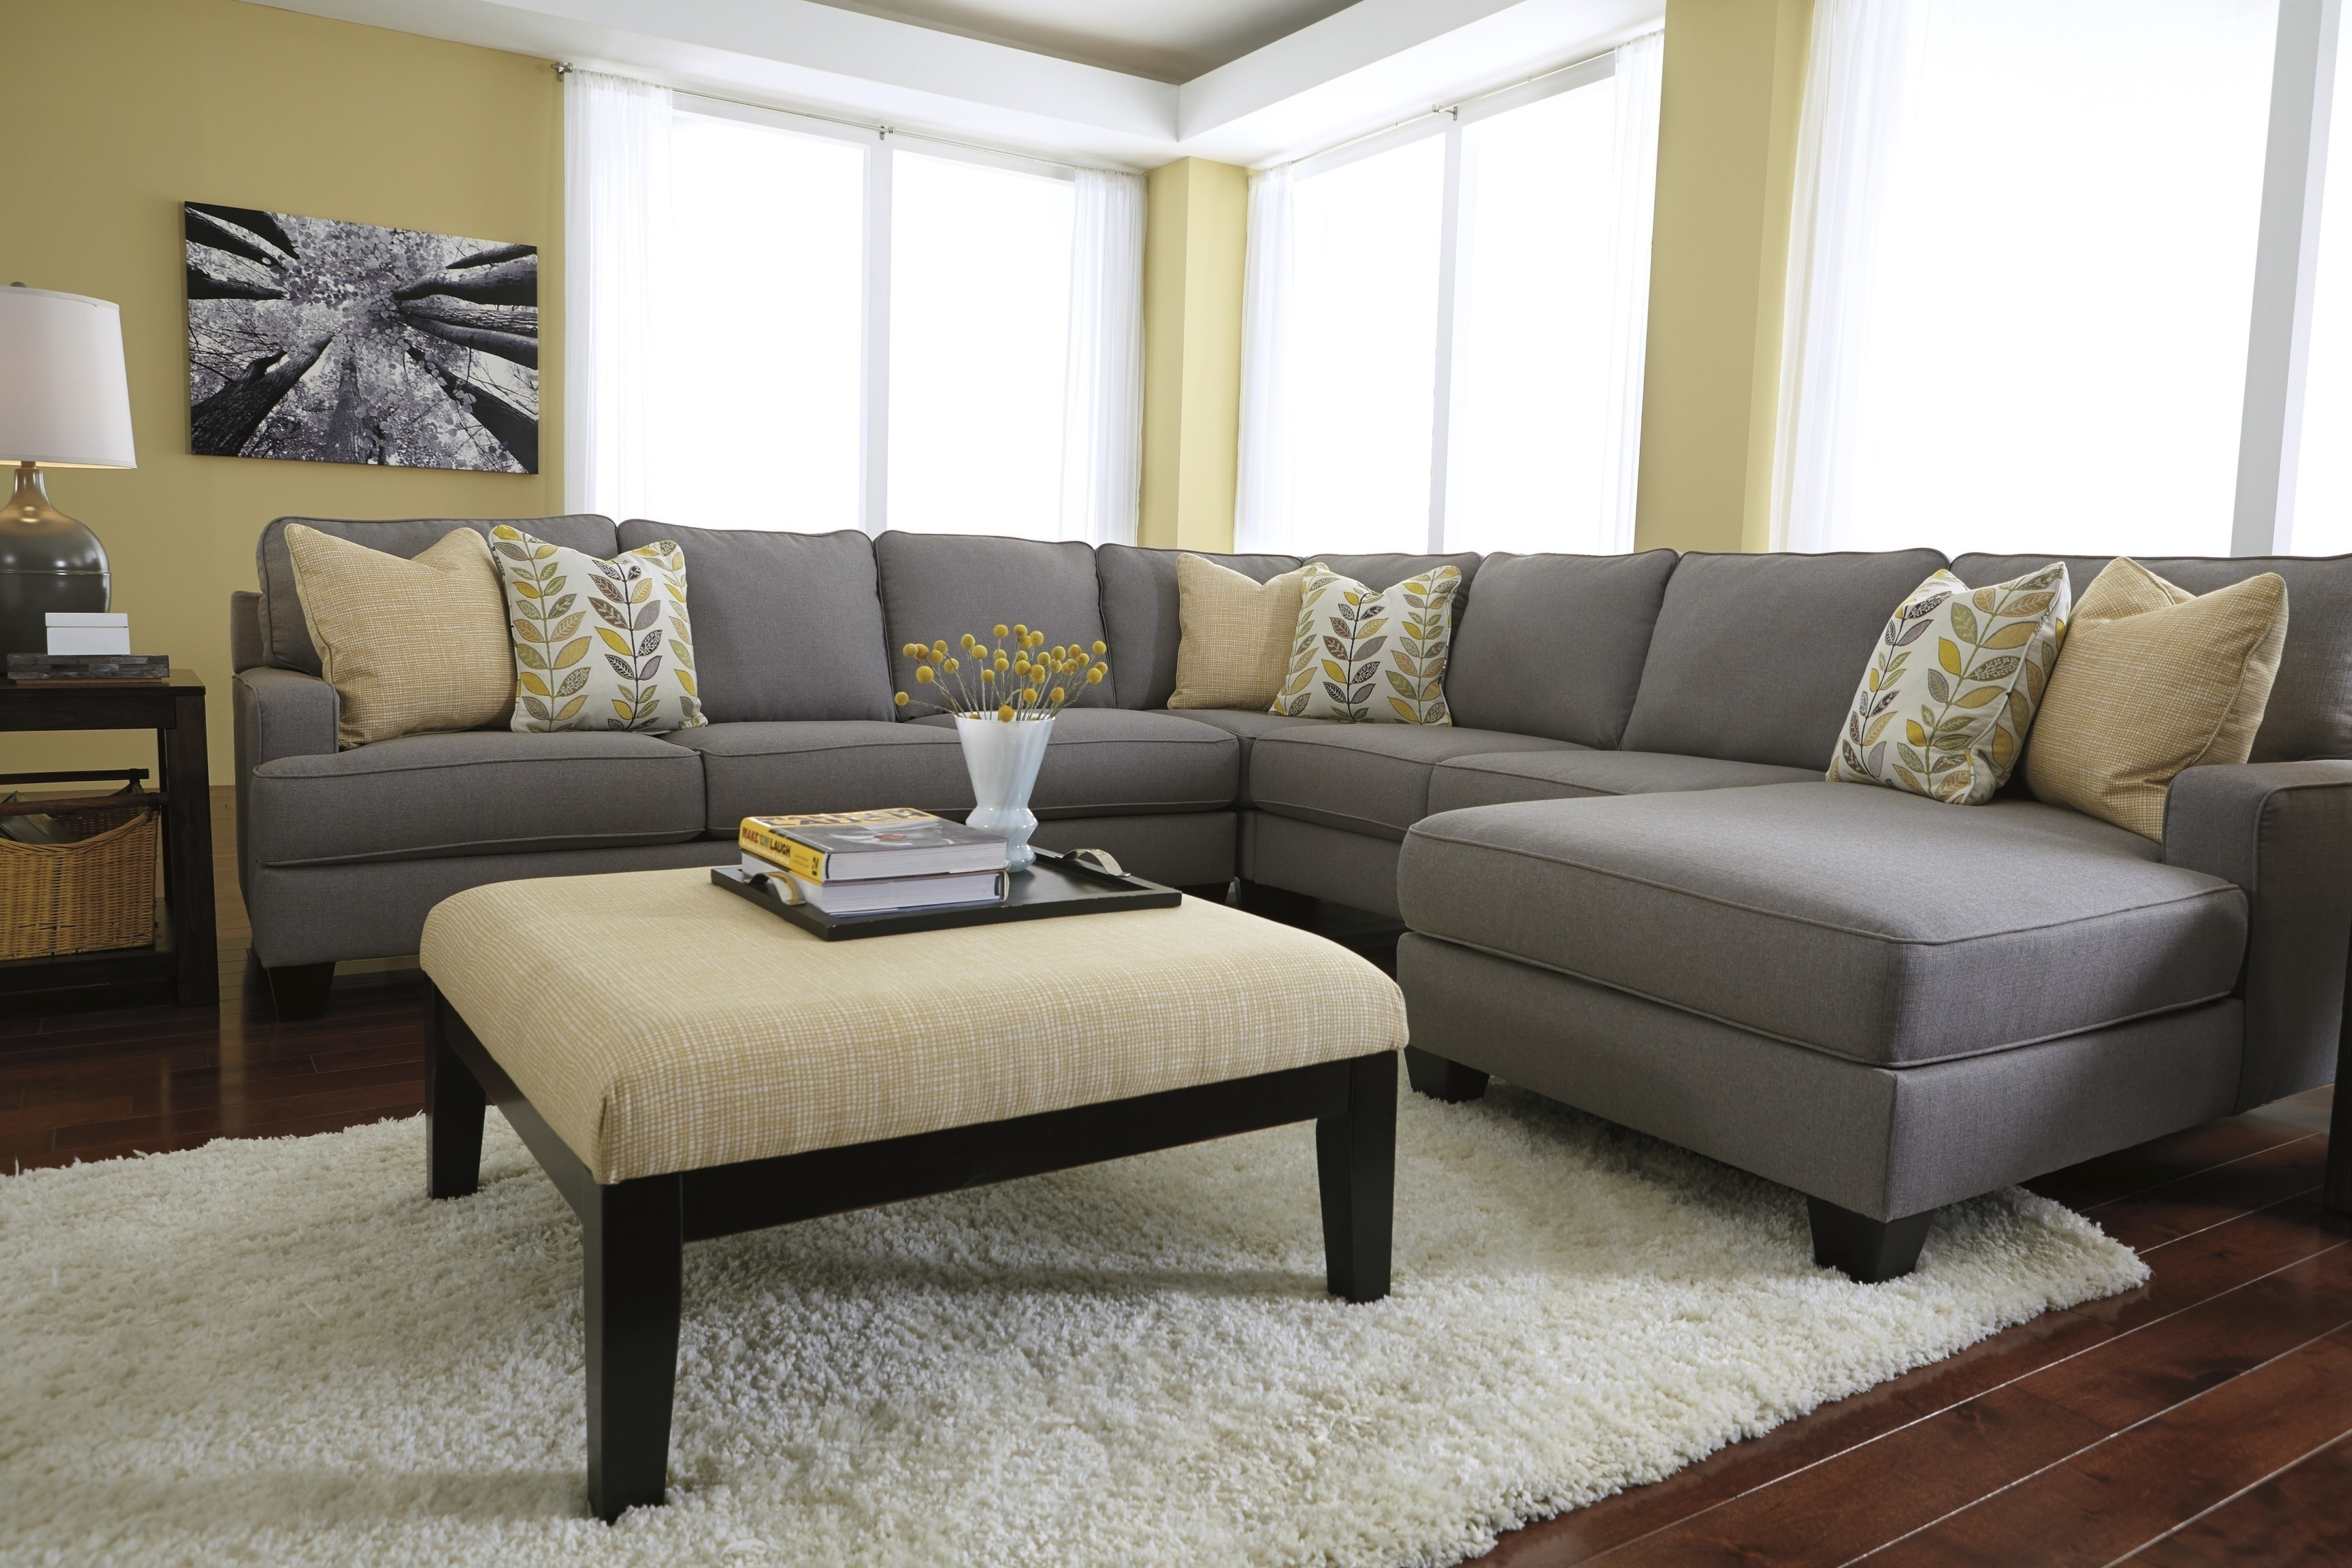 Sectional Sofa : Leonss~1 Sectional With Oversized Ottoman Pertaining To Sectionals With Oversized Ottoman (View 8 of 15)